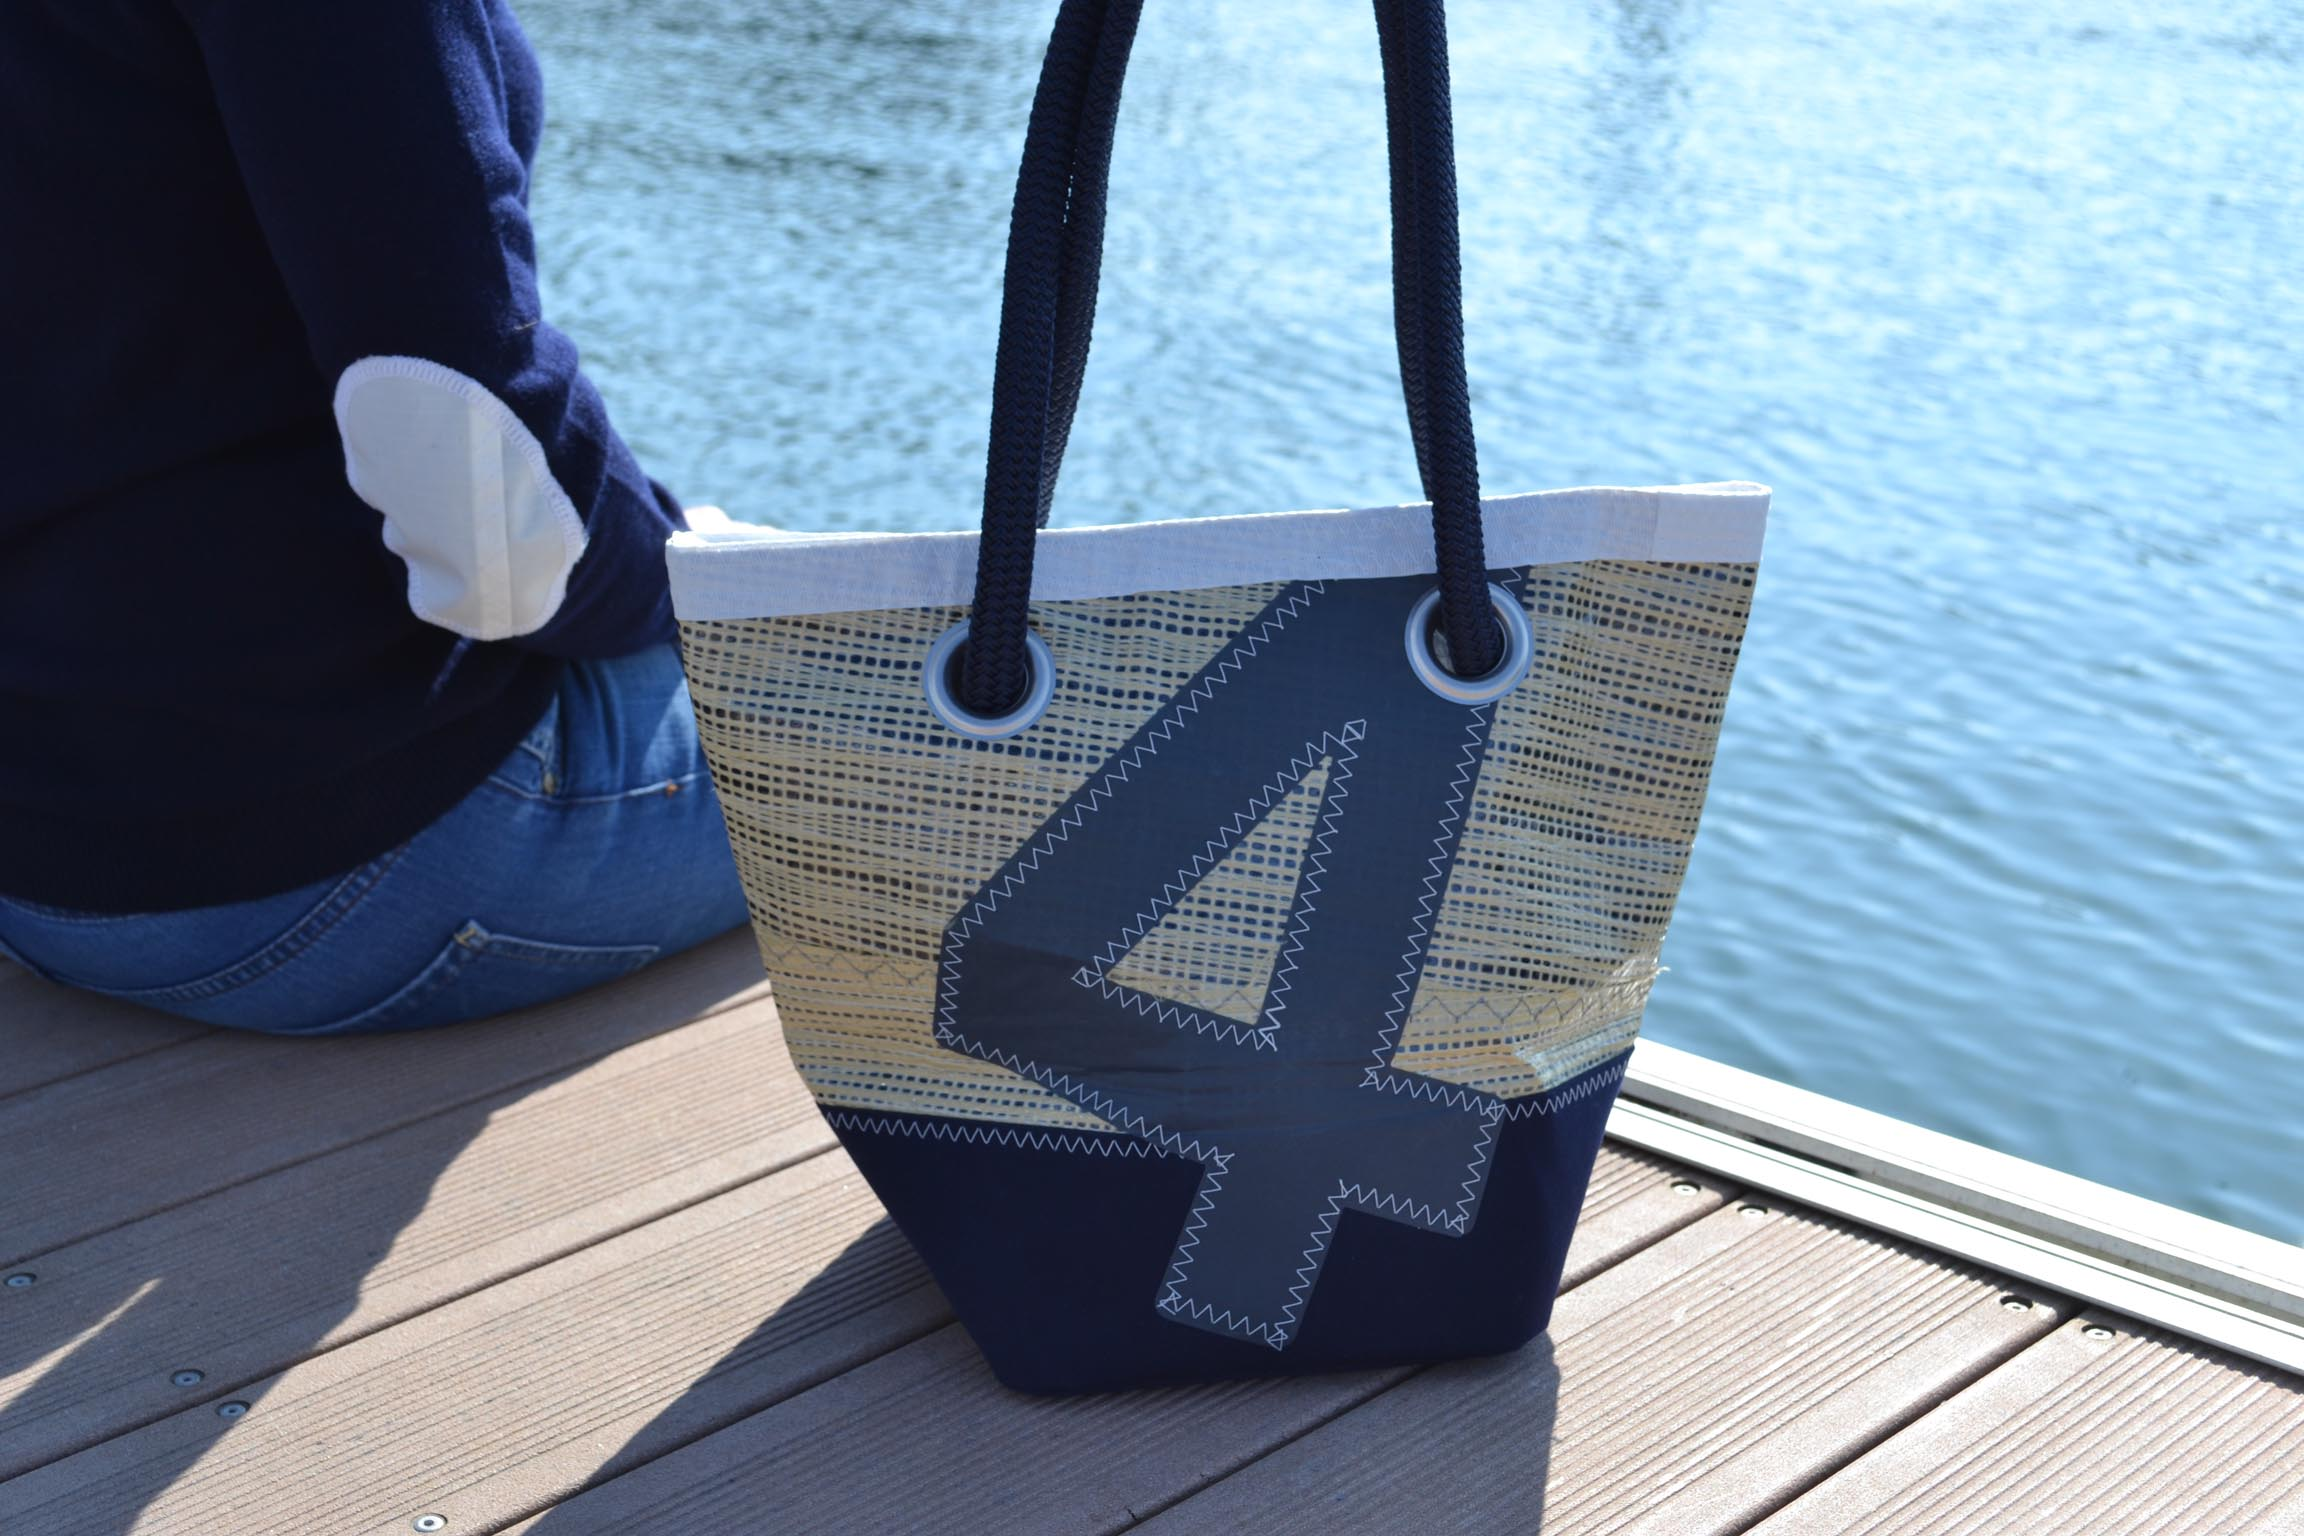 Collection 727 sailbags x eric bompard en dition limit e for Canape 727 sailbags